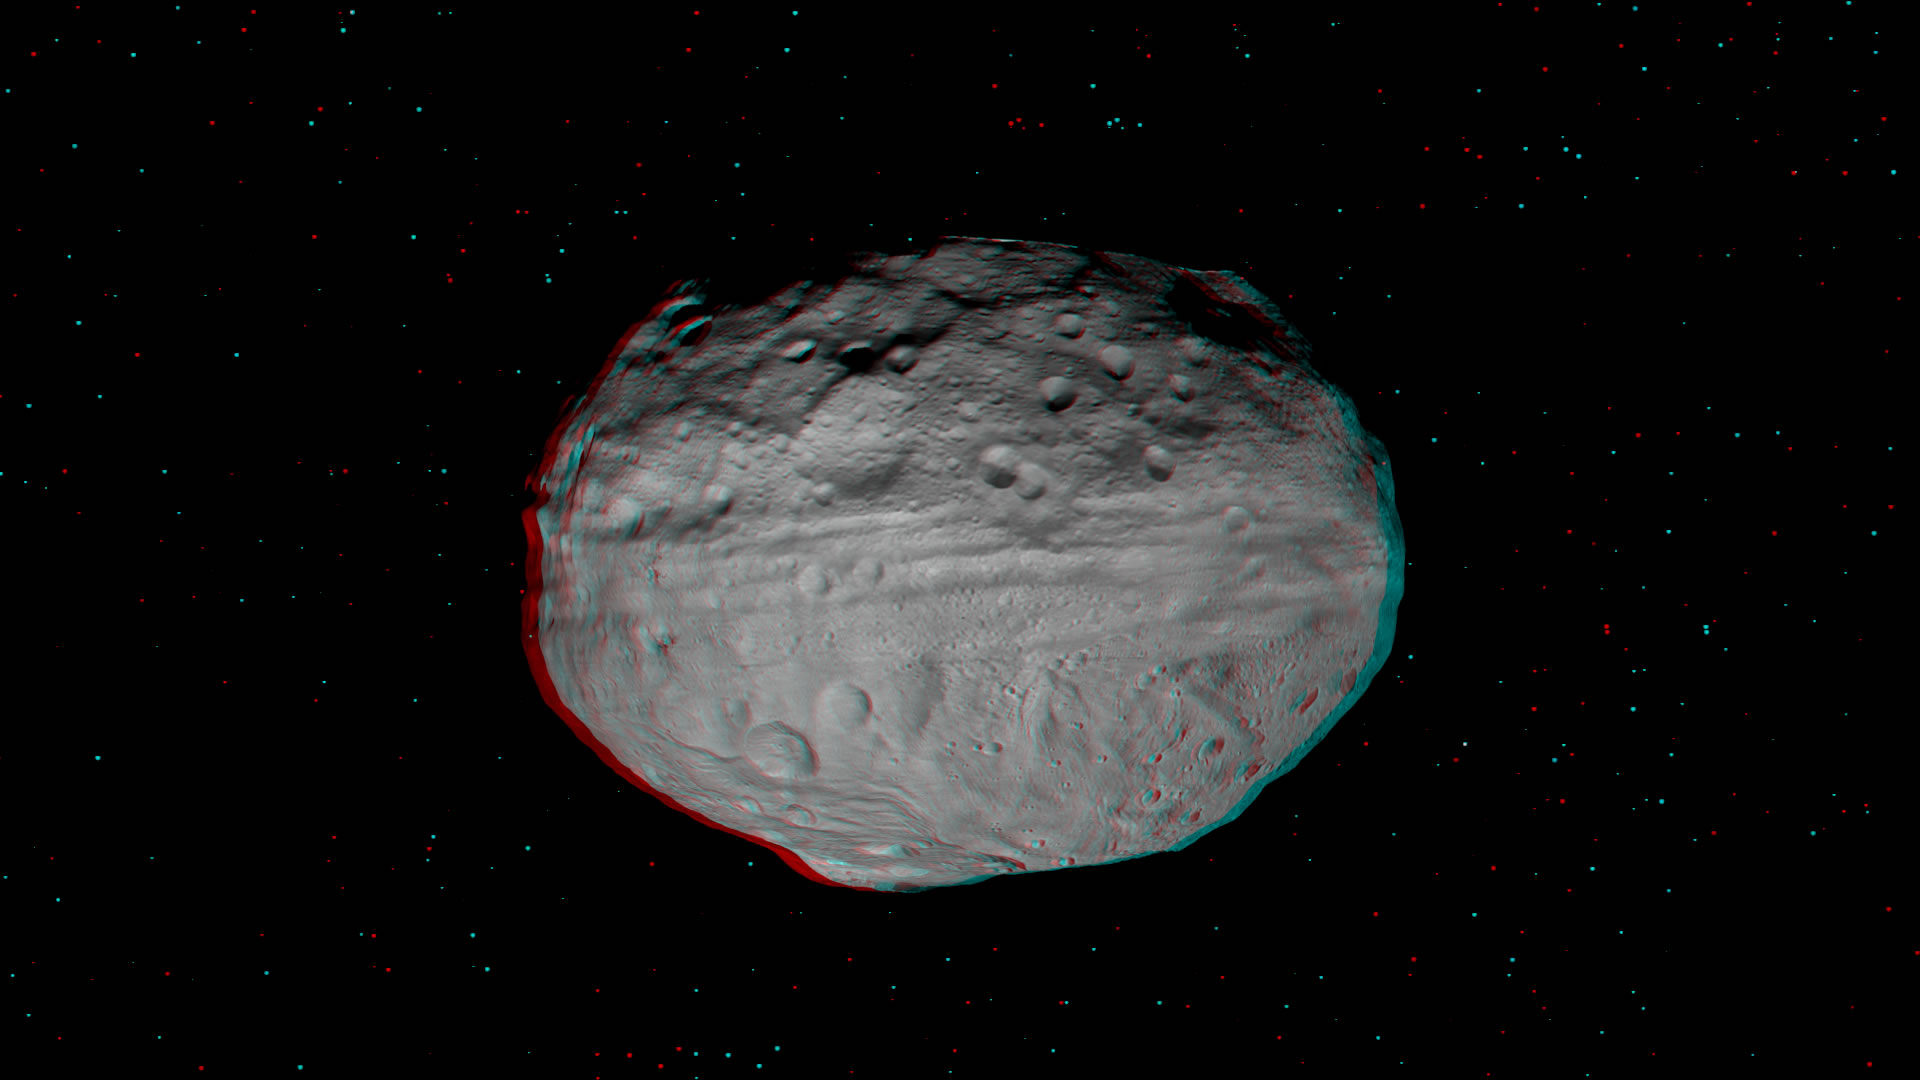 asteroid 4 vesta live position and data theskylivecom - HD 1920×1080